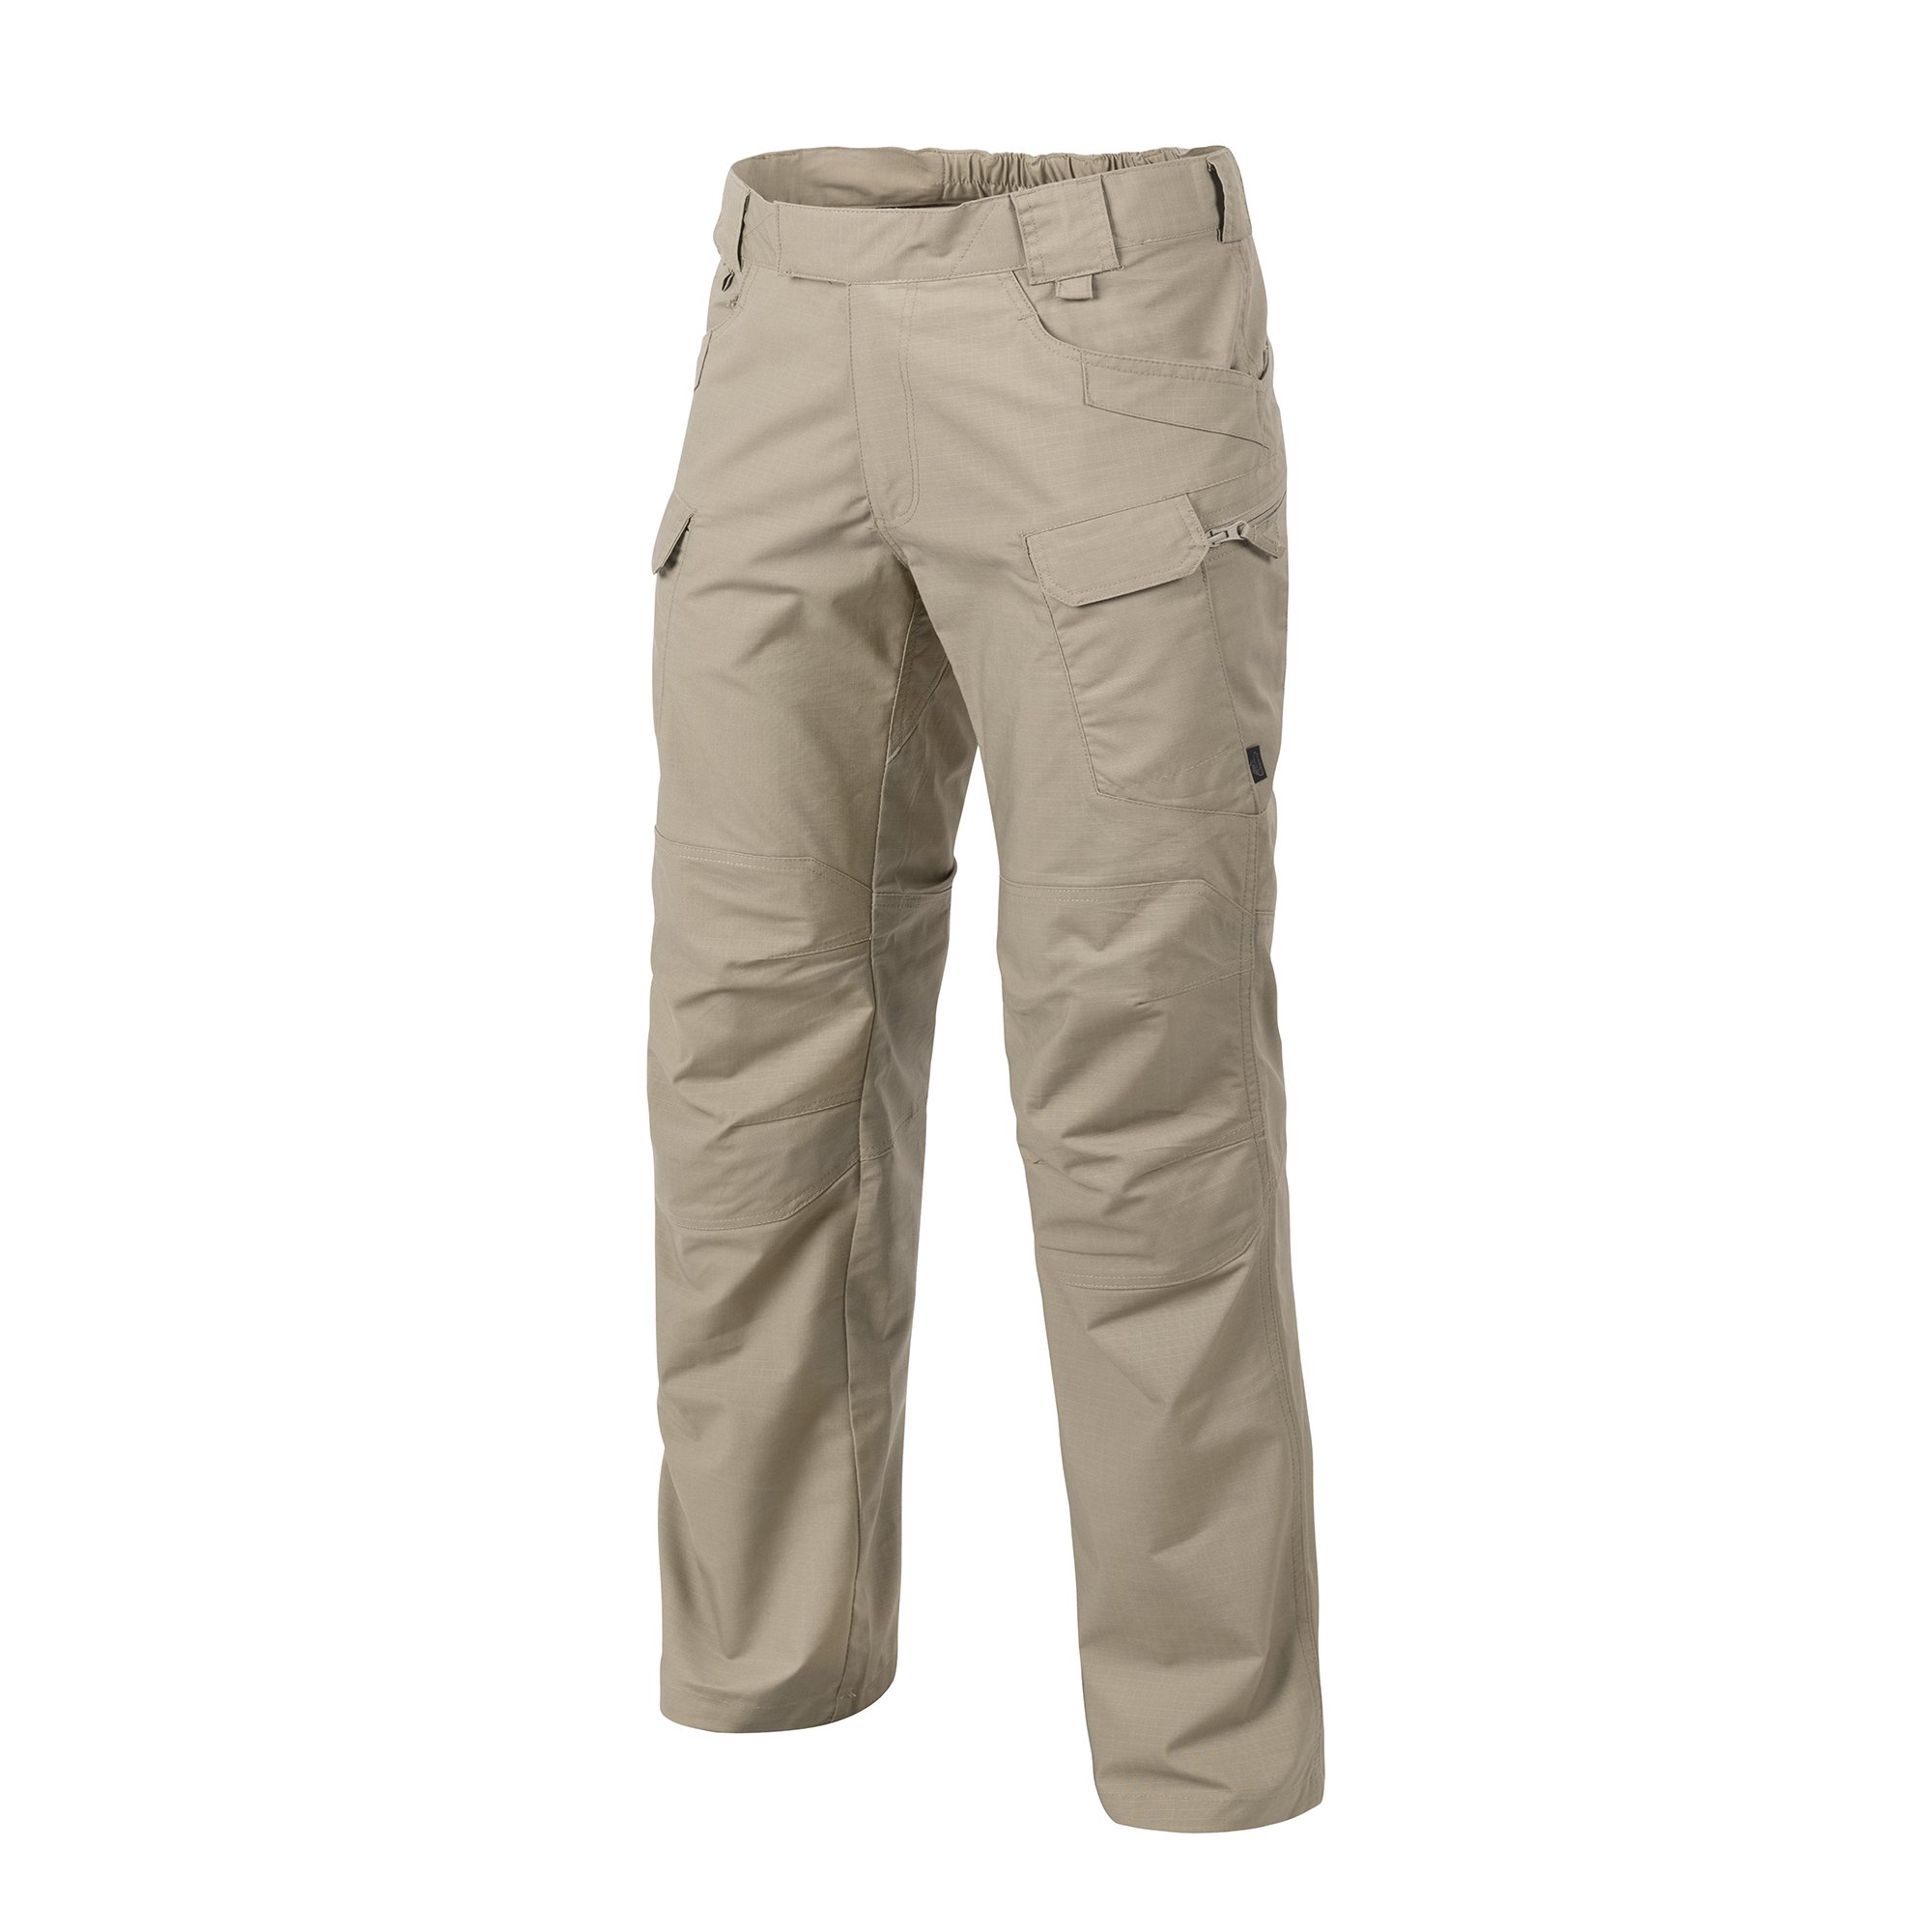 HELIKON-TEX Urban Line, UTP Urban Tactical Pants Ripstop Khaki, Military Ripstop Cargo Style, Men's Waist 38 Length 32